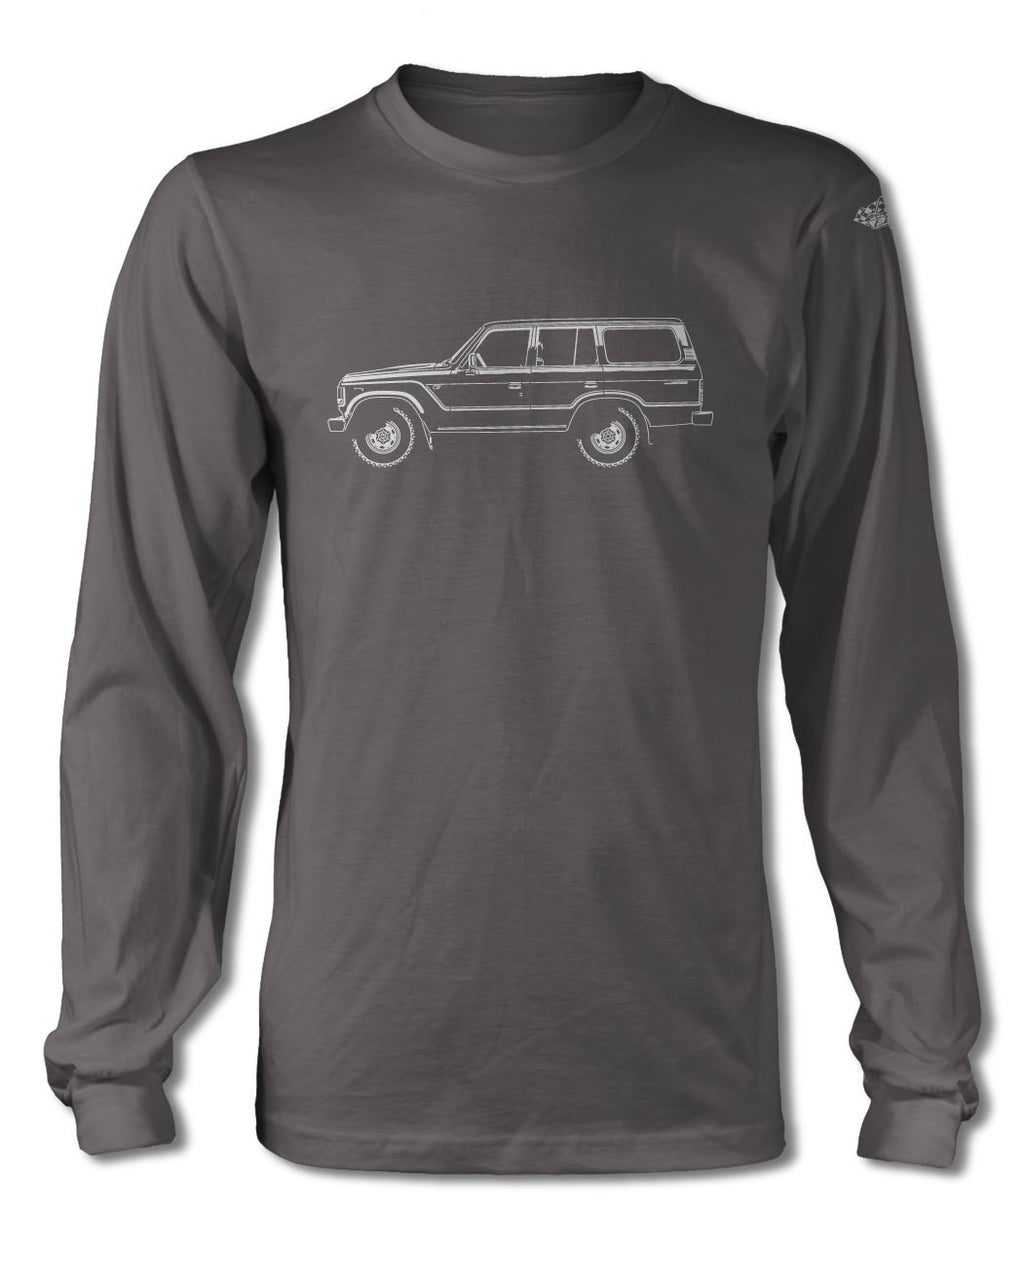 Toyota BJ60 FJ60 Land Cruiser 4x4 T-Shirt - Long Sleeves - Side View